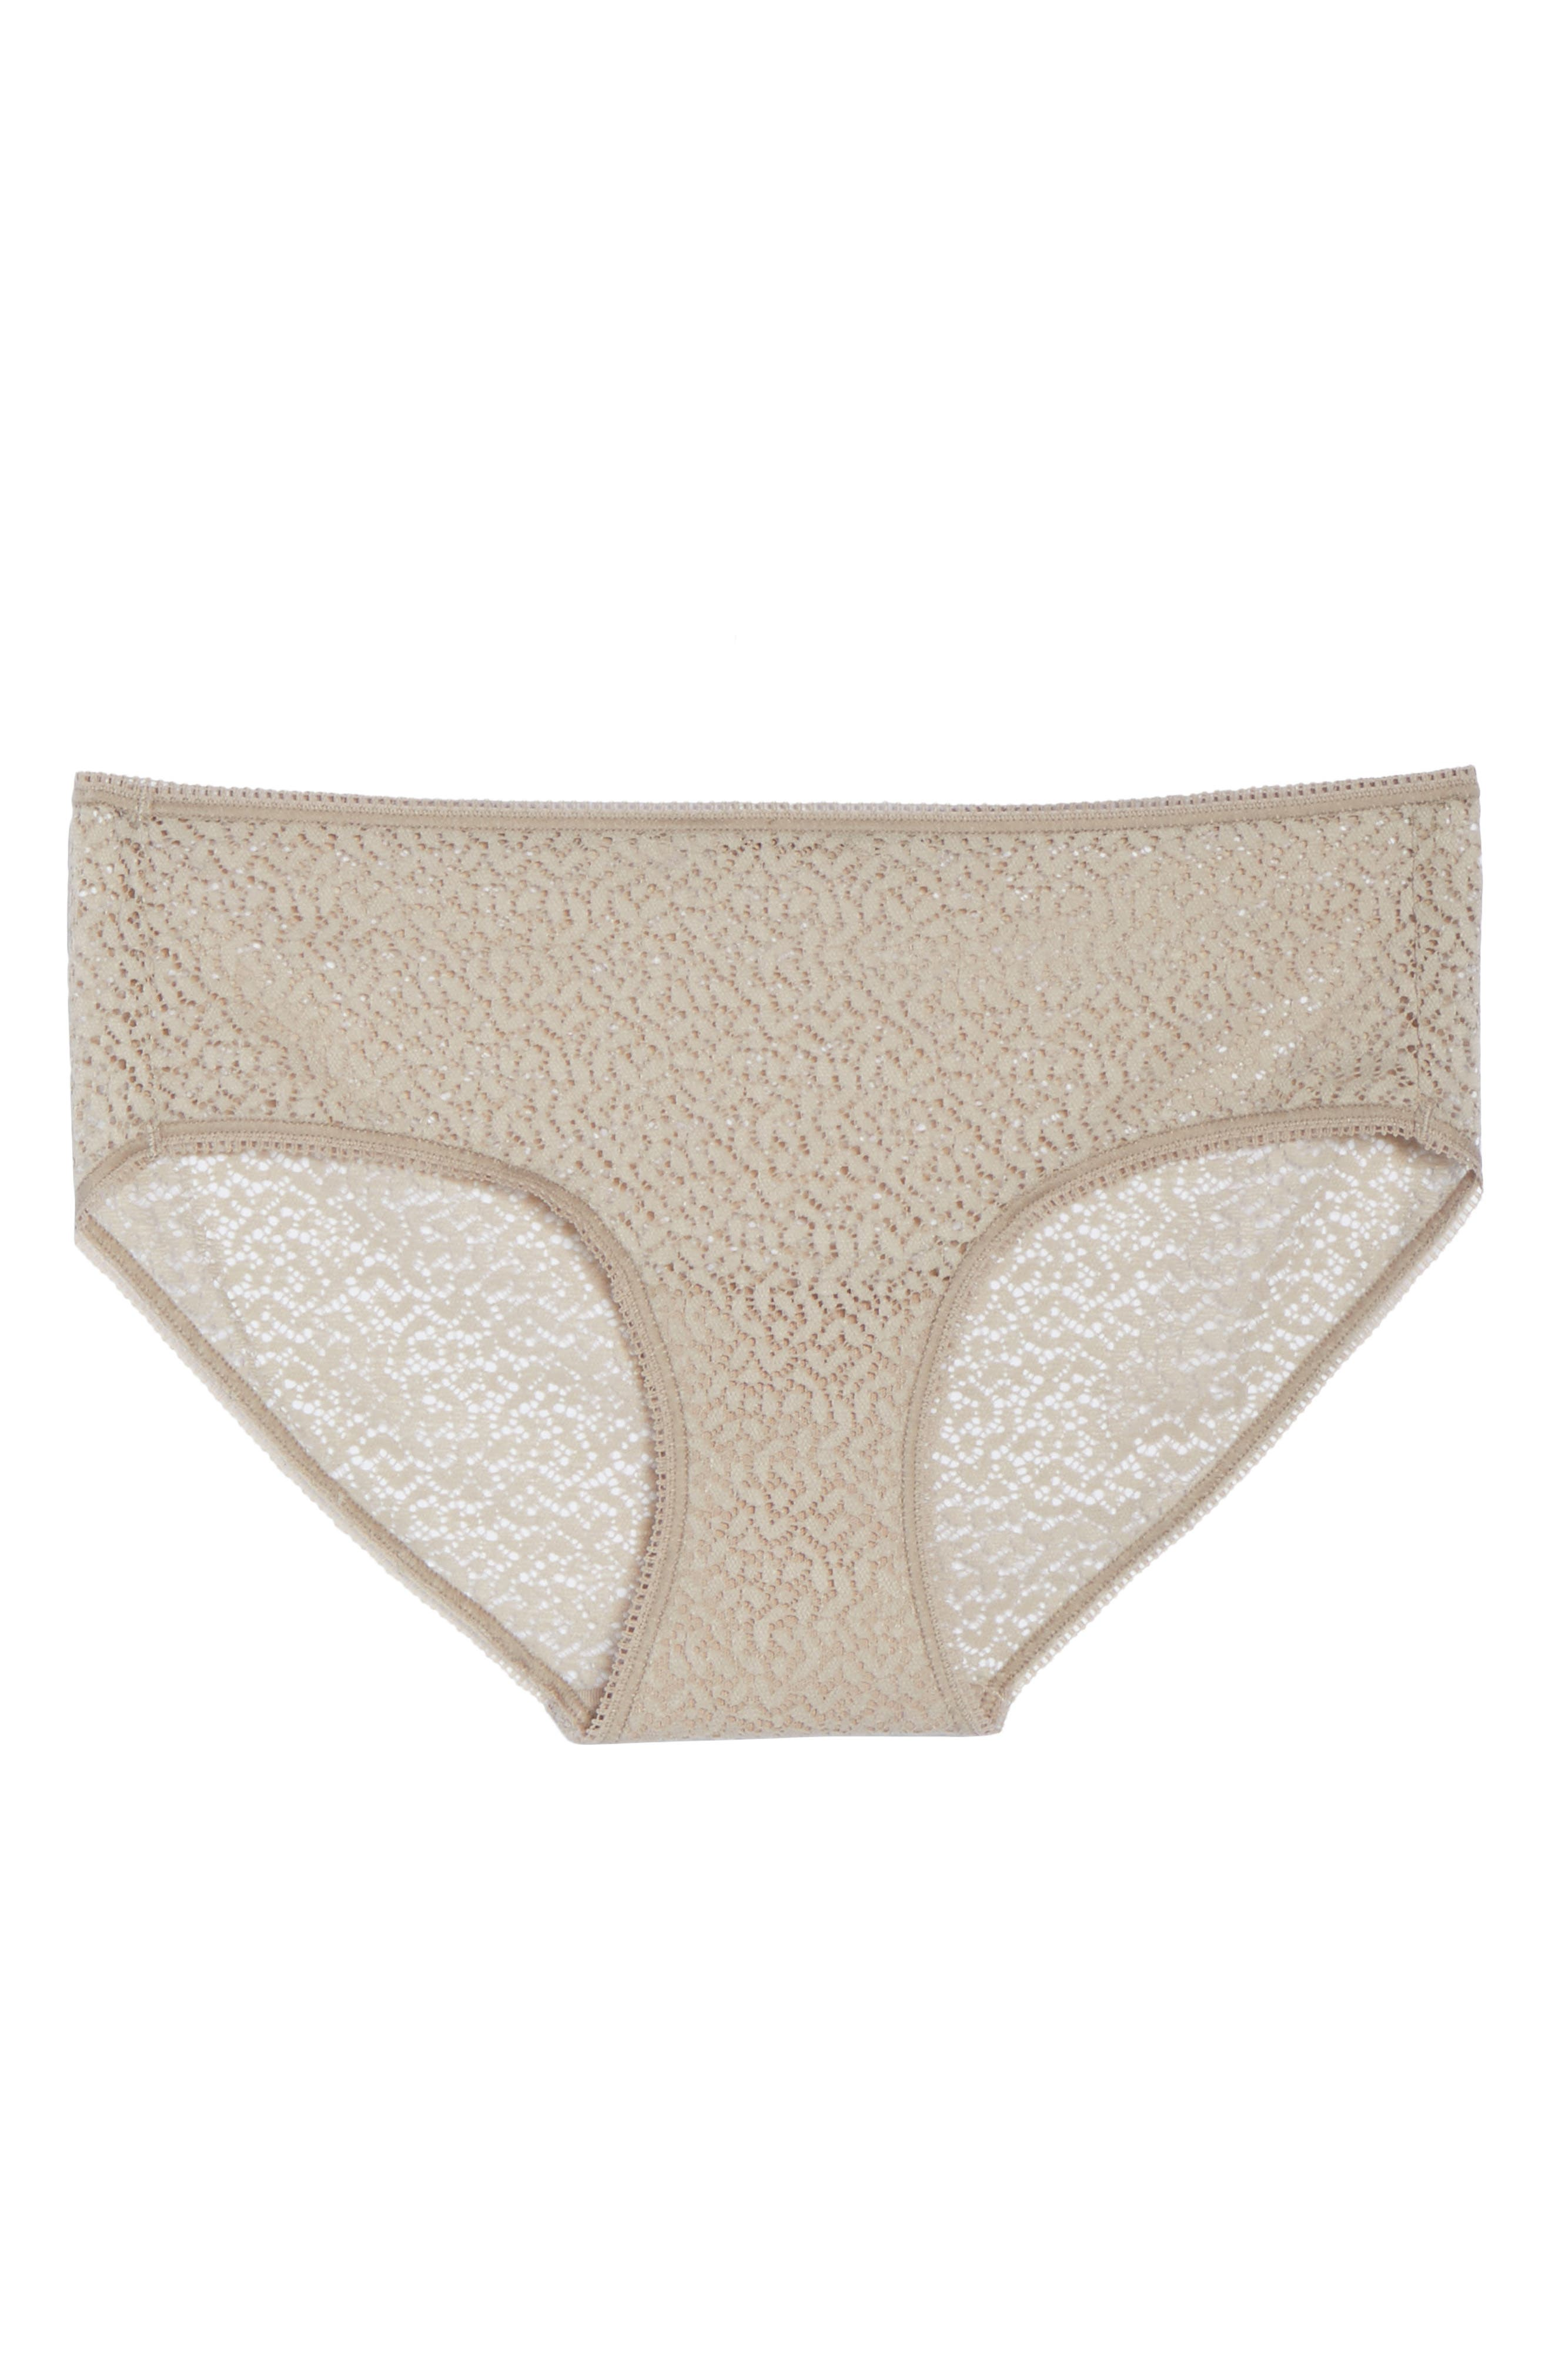 Modern Lace Hipster Panties,                             Alternate thumbnail 18, color,